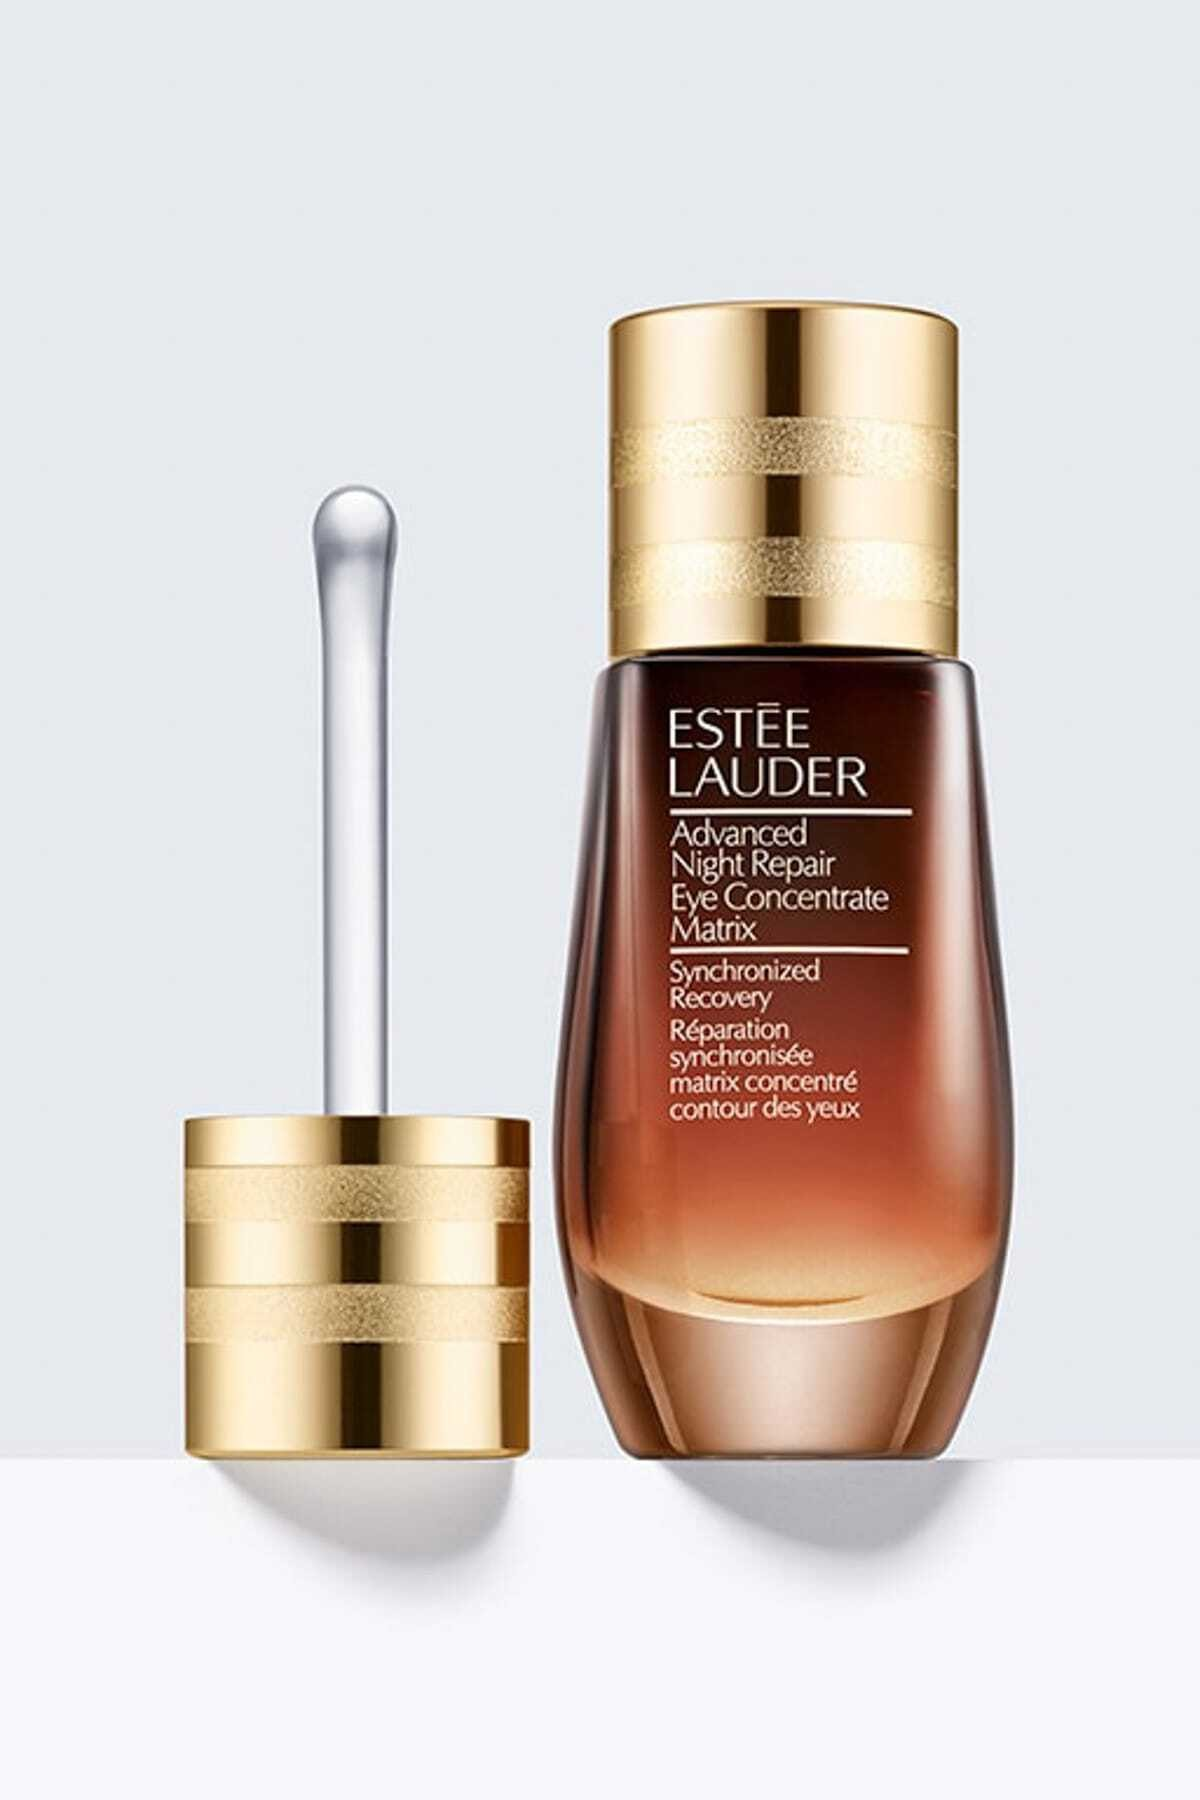 Estee Lauder Yaşlanma Karşıtı Göz Kremi - Advanced Night Repair Eye Concentrate Matrix 15 ml - 887167322387 1